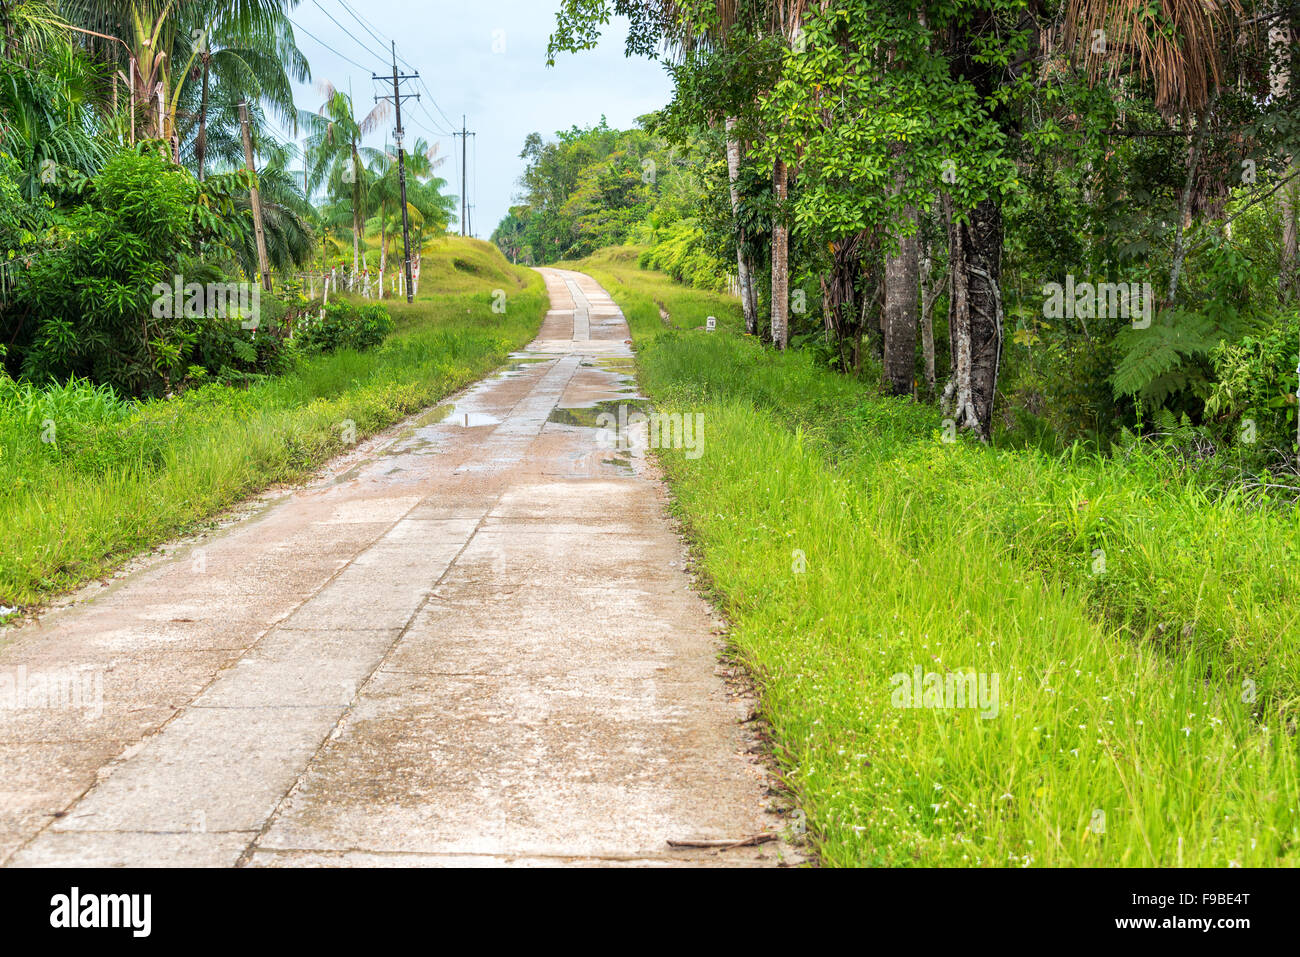 Highway running through the Amazon rain forest near Leticia, Colombia - Stock Image